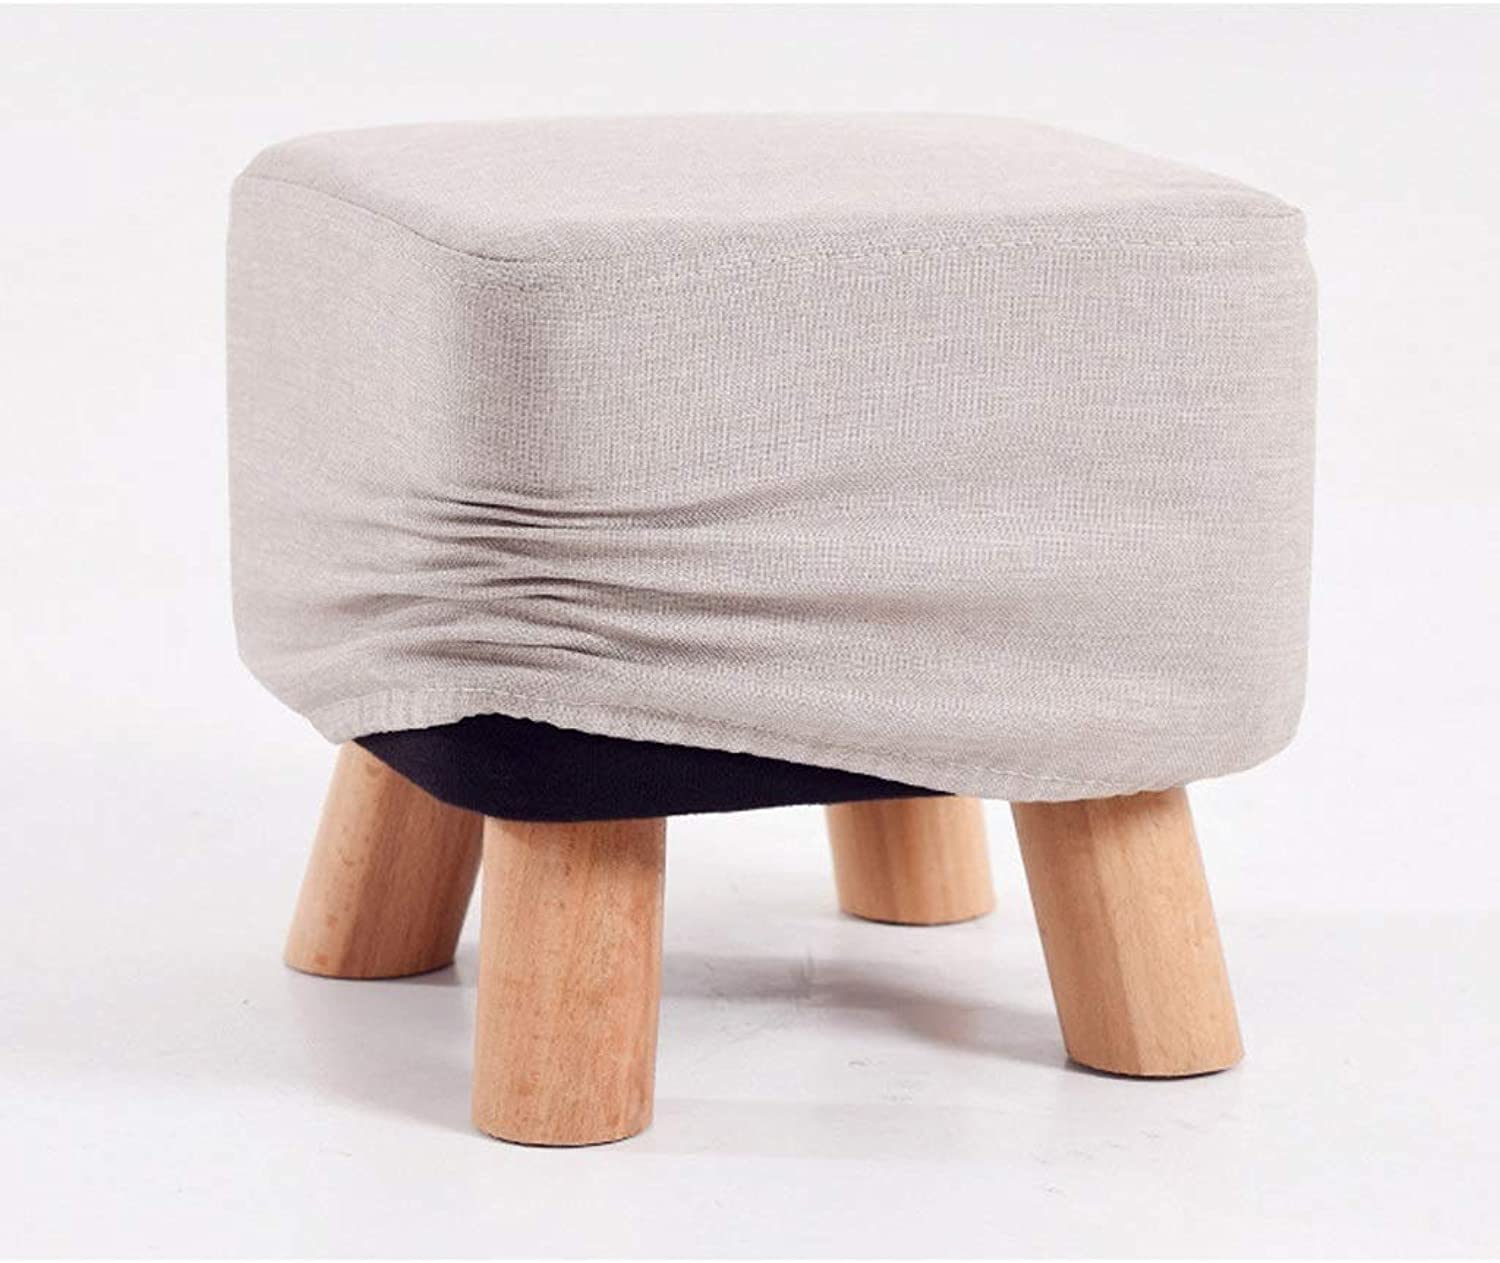 LLSDLS Solid Wood Fabric Stool Adults and Kids Small Bench Solid Wood Change shoes Bench Creative Sofa Stool.